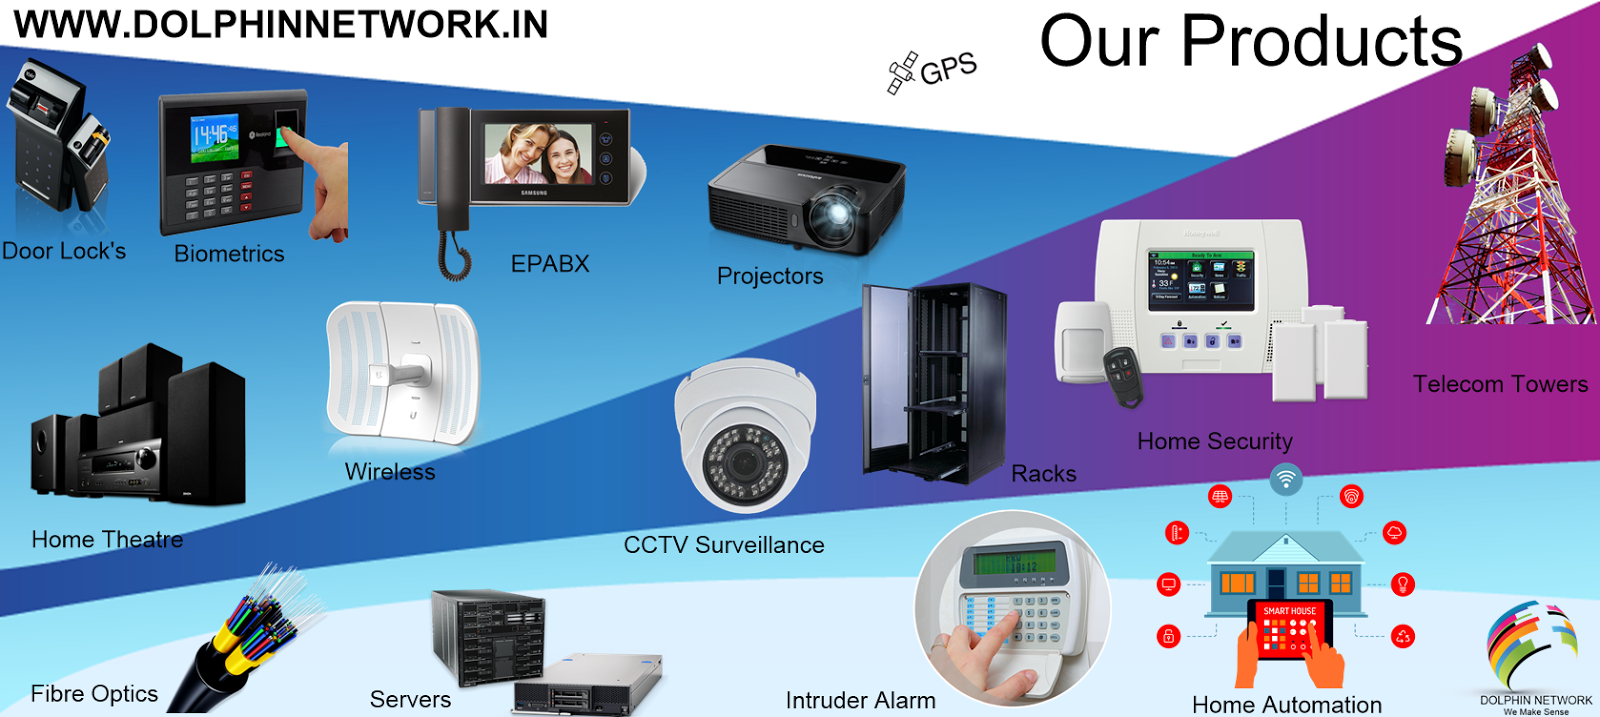 CCTV Camera,Server Parts,Fibre Opcics,Home Automation,Video Door ...